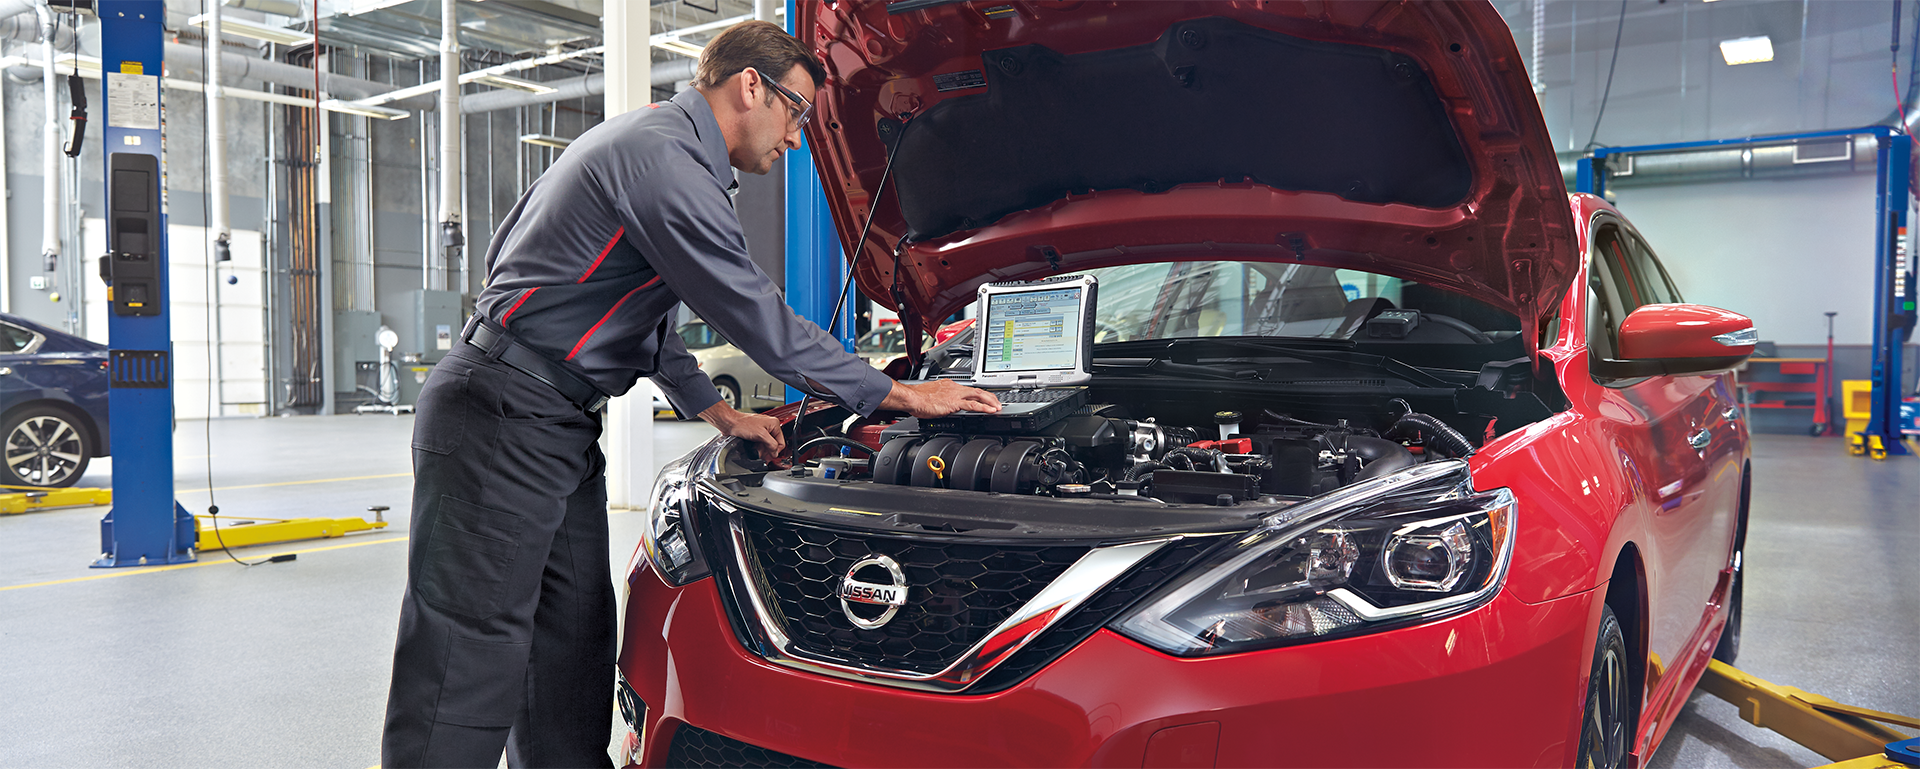 Boch Nissan South is a Family Owned Dealership near Mansfield, MA | Nissan mechanic diagnosing the performance of a vehicle